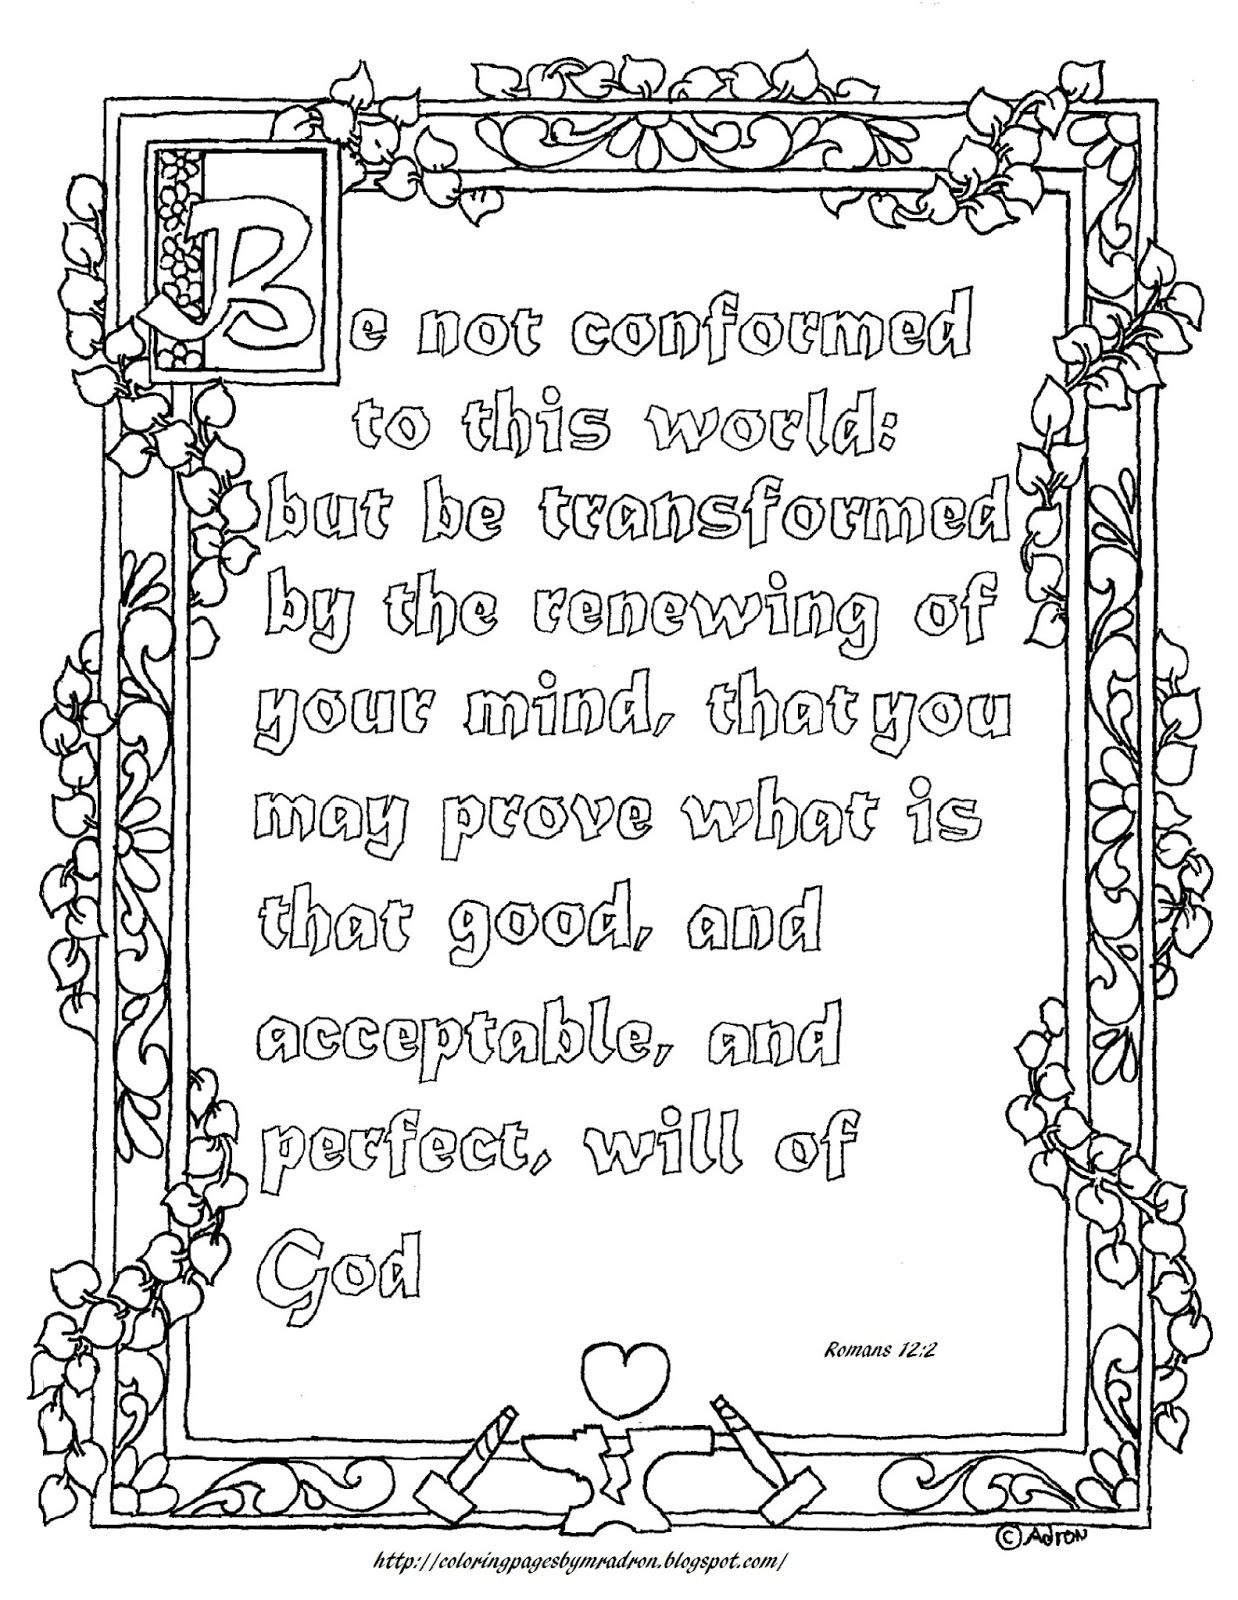 Free Printable Romans 12 2 Coloring Page For Be Not Conformed